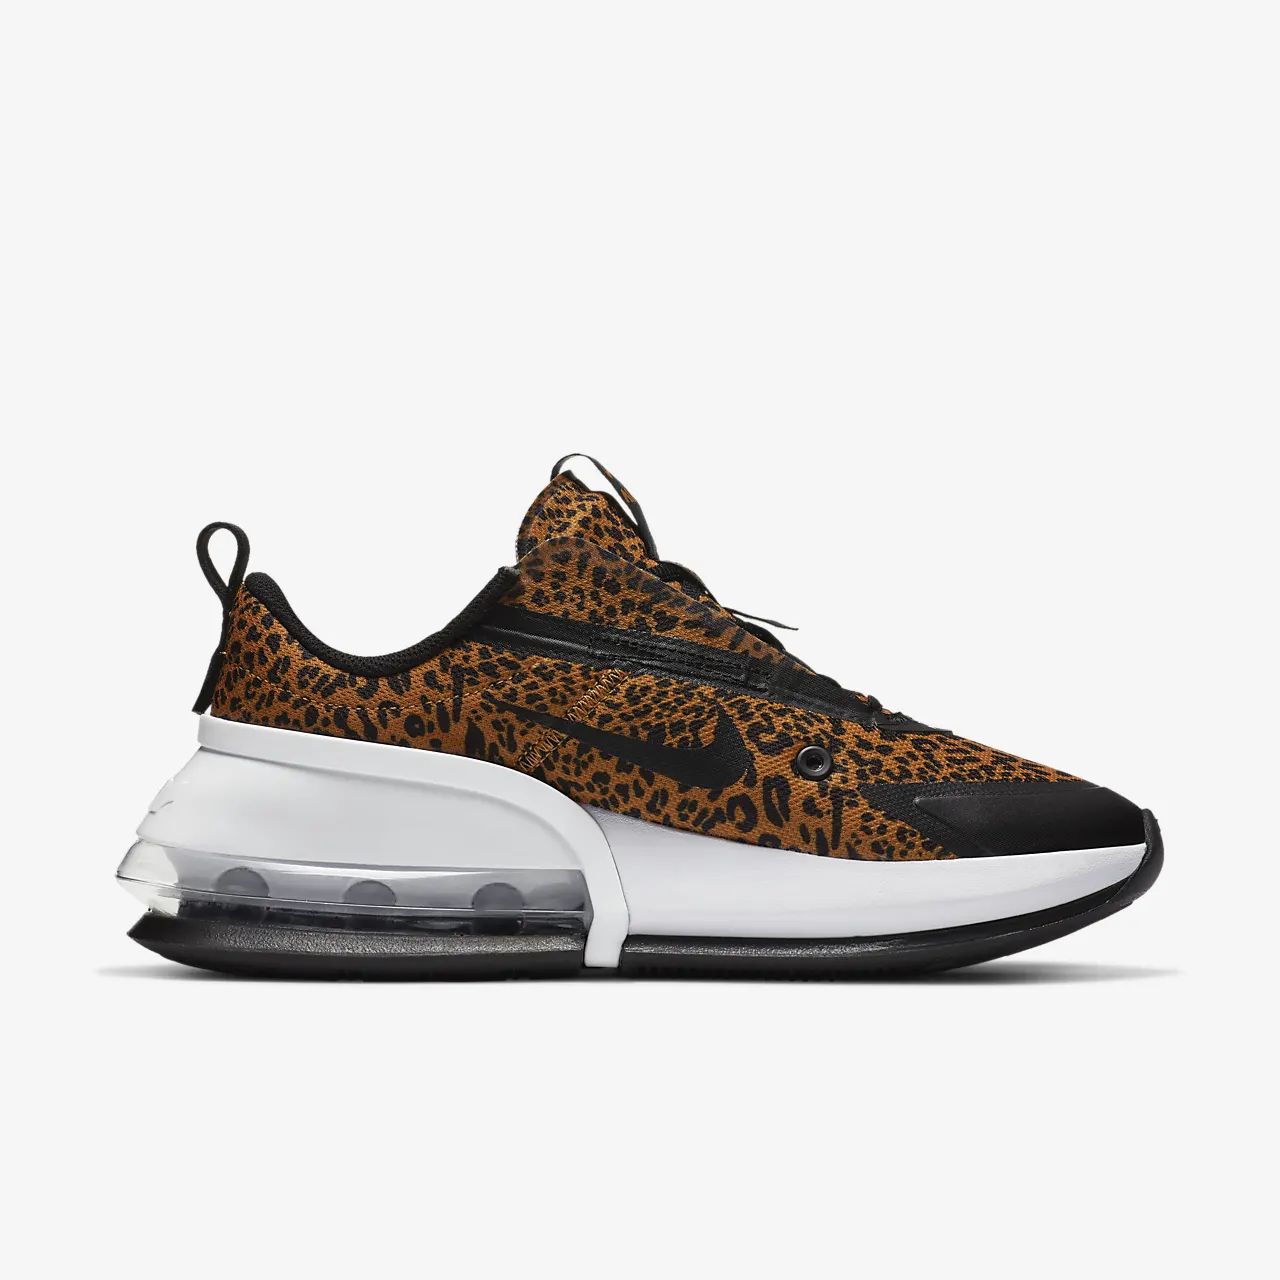 유럽직배송 나이키 NIKE Nike Air Max Up Women's Shoe DC9206-700